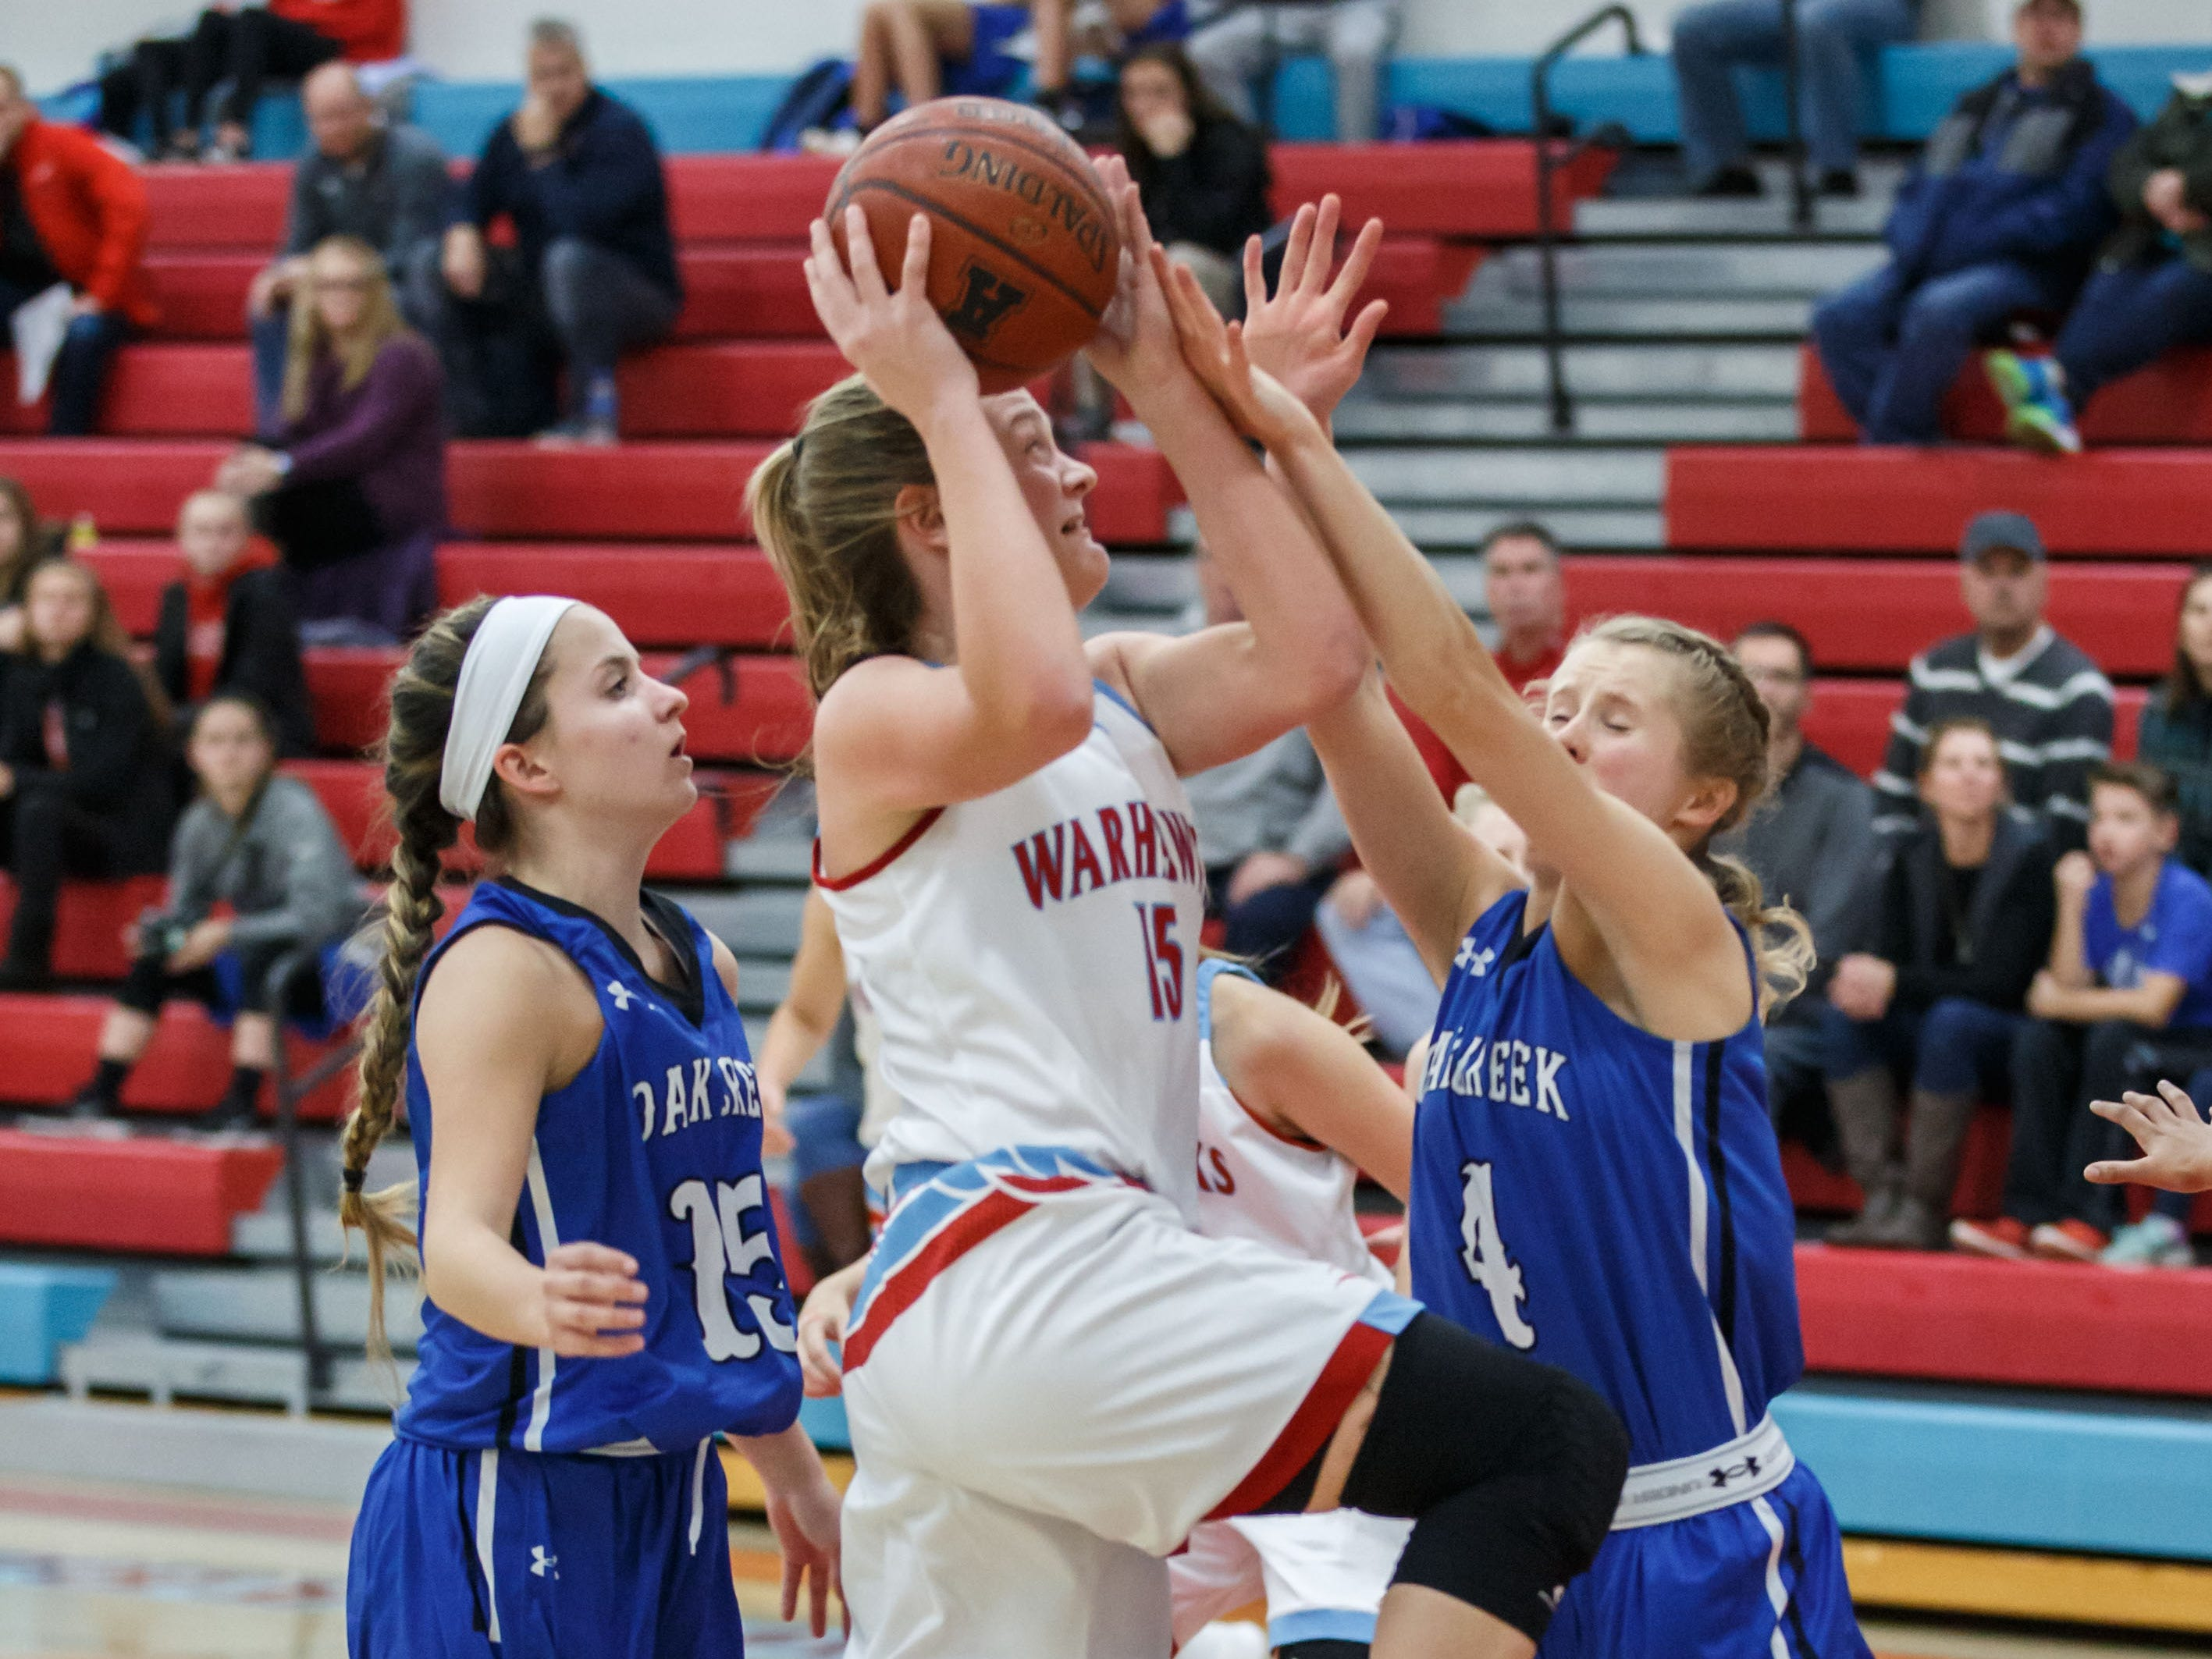 Arrowhead sophomore Phoebe Frentzel (15) drives in for a layup during the game at home against Oak Creek on Friday, Nov. 16, 2018.